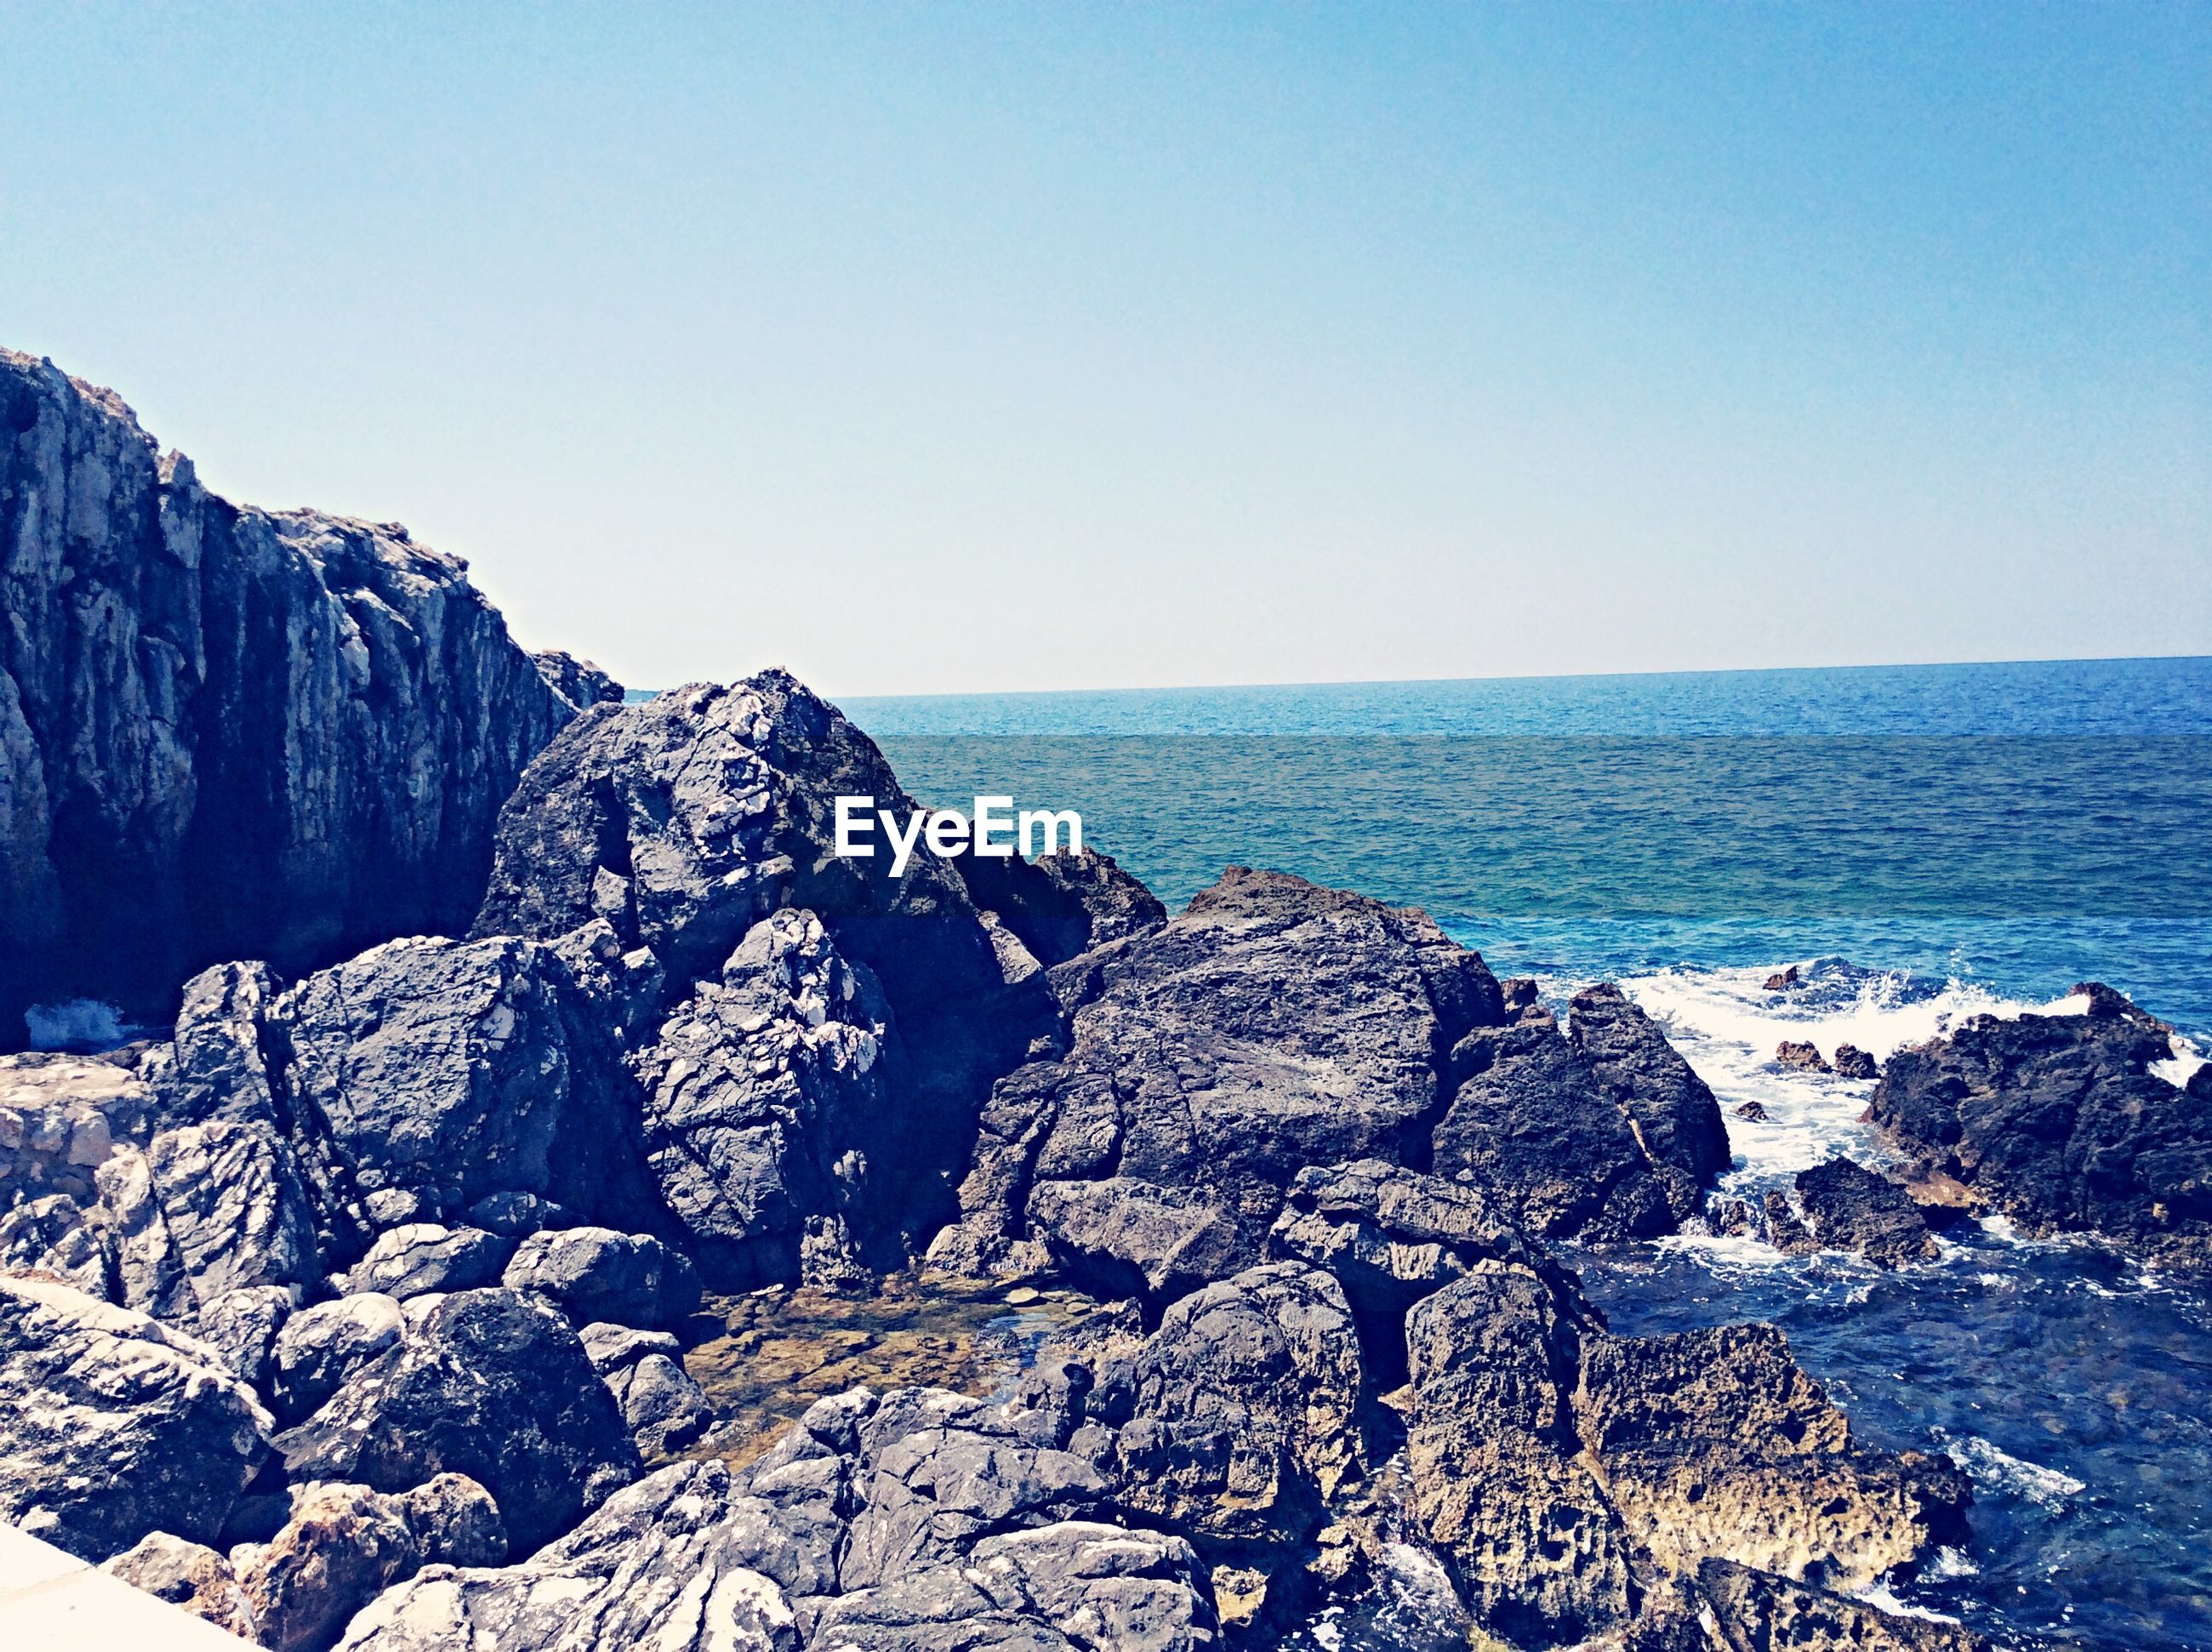 water, sea, scenics, blue, clear sky, beauty in nature, rock formation, tranquility, tranquil scene, rock - object, nature, mountain, copy space, idyllic, cliff, geology, rock, waterfront, non-urban scene, day